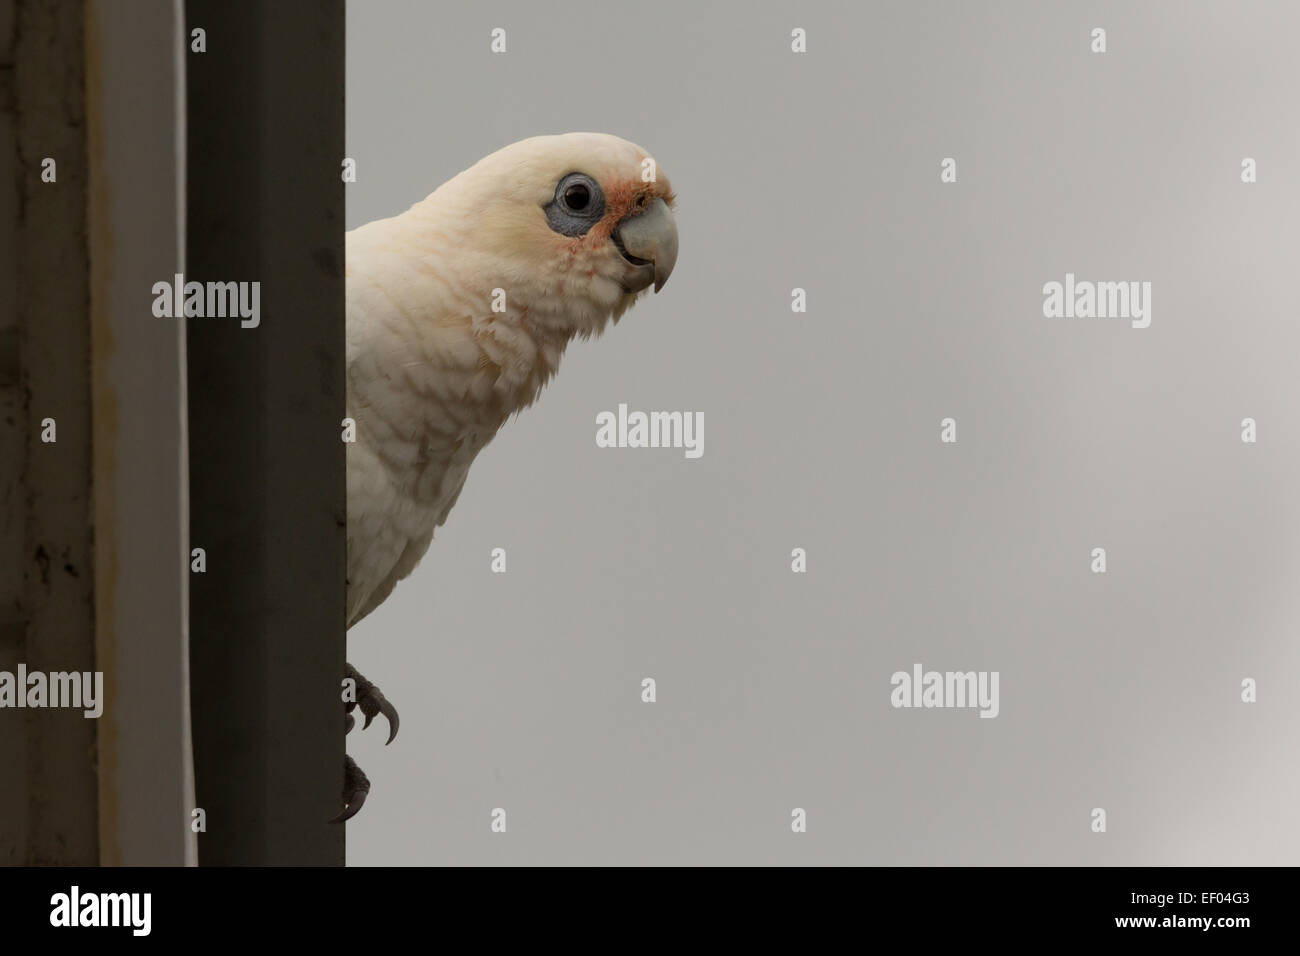 A photograph of a little corella. The photograph was taken in northern NSW, Australia. - Stock Image